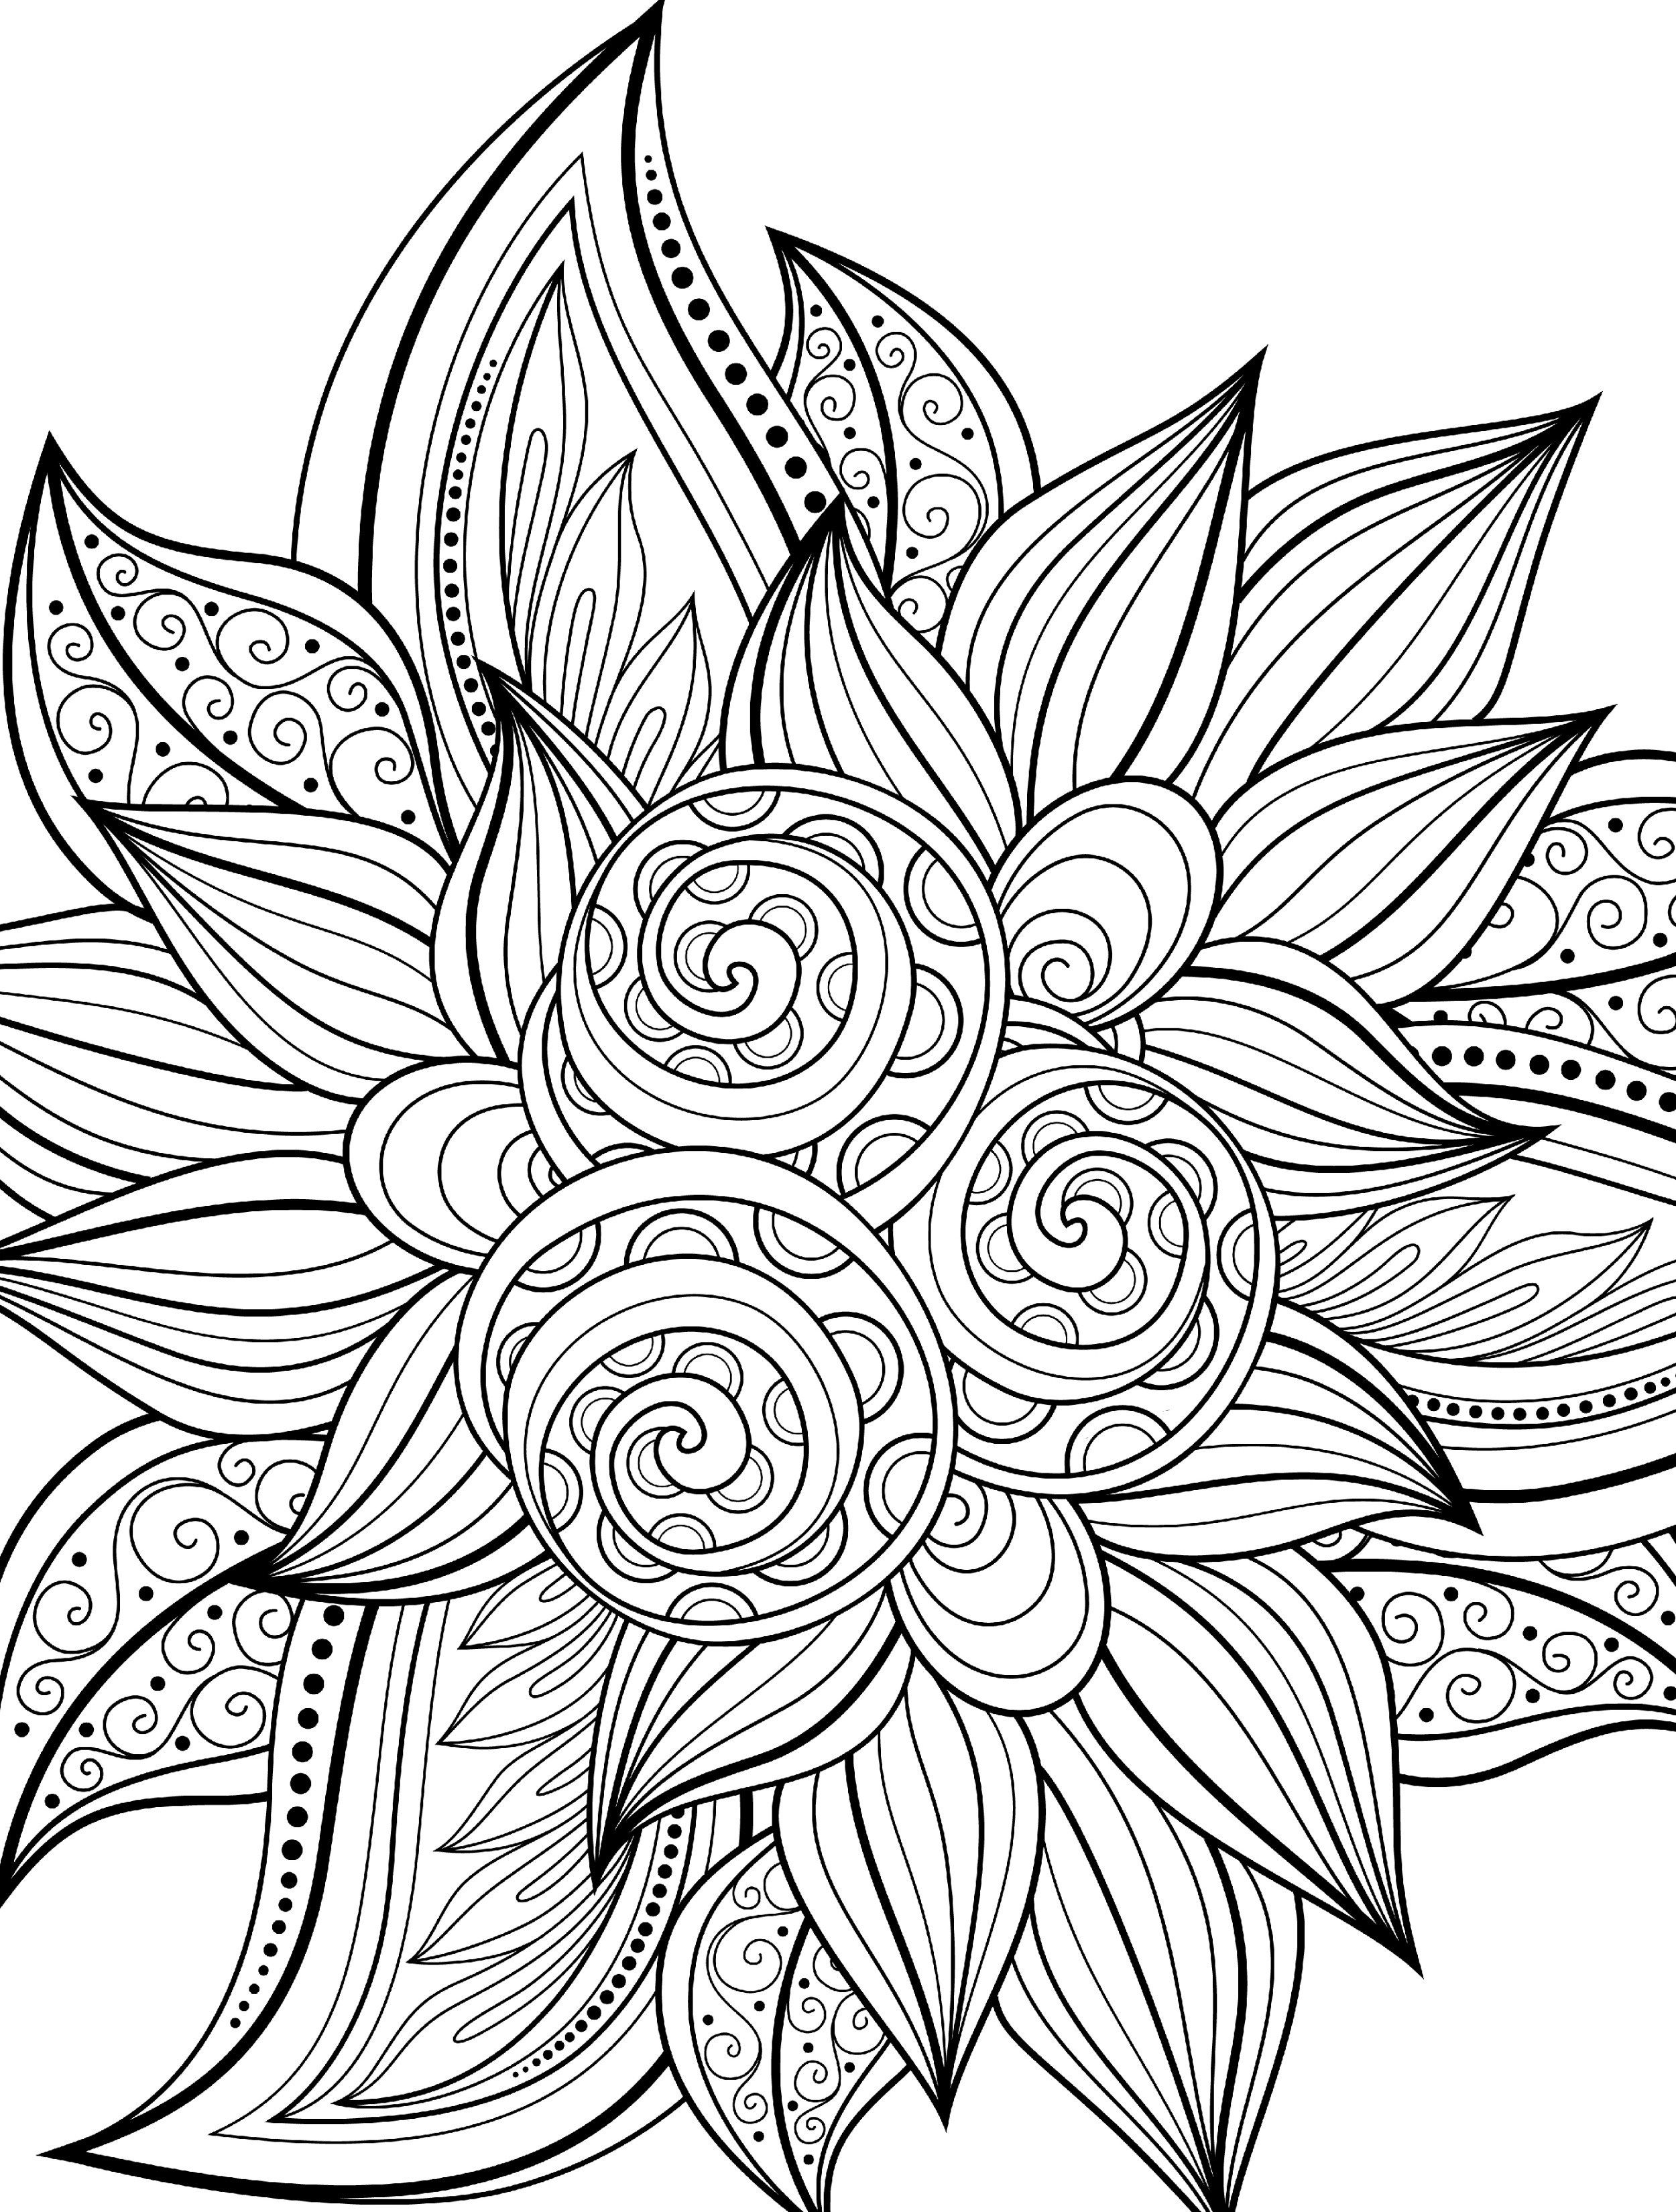 Adult coloring pages free printables mandala - 10 Free Printable Holiday Adult Coloring Pages